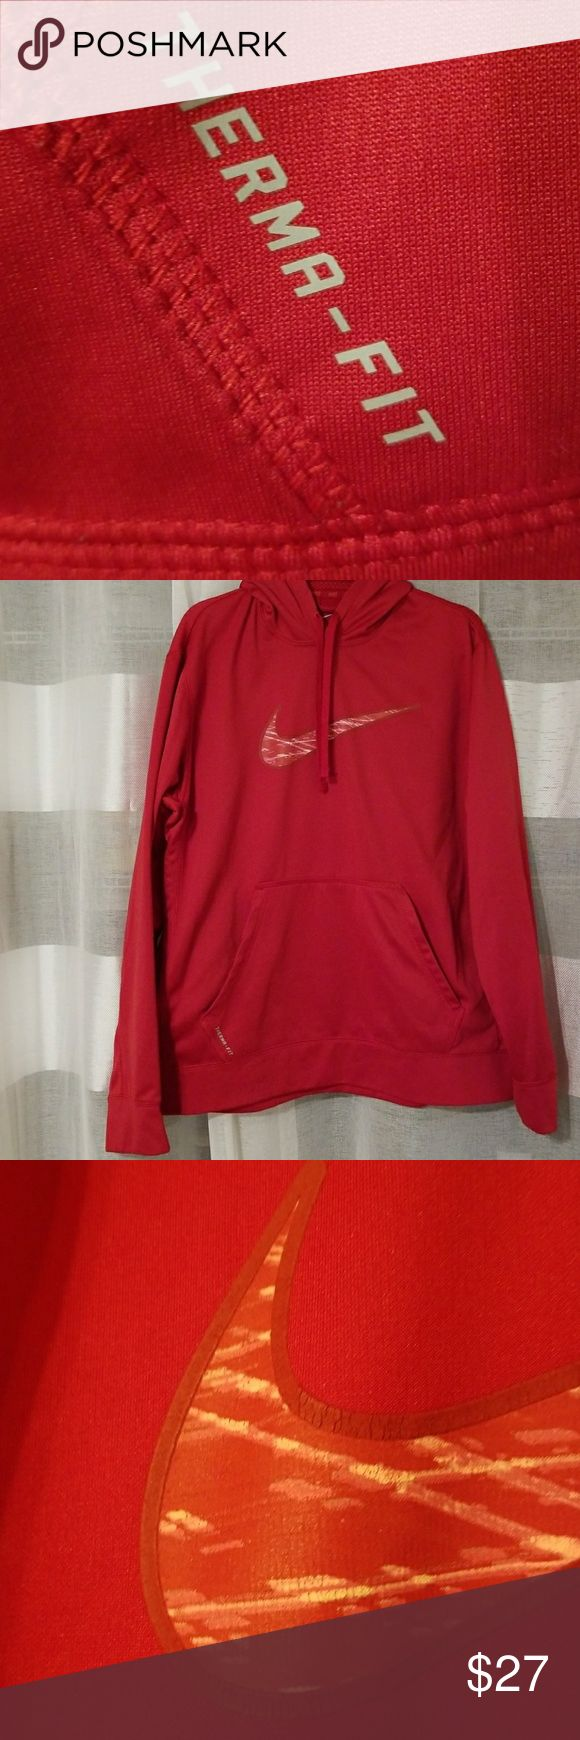 Red Nike Therma-Fit Hoodie Deep Red Therma-Fit Fleece Lined Hoodie. Gently worn in smoke free home. Fabric is in excellent condition with the exception of the bottom band in the front. (See photos) Was ACCIDENTALLY WORN (men?!?) during an impromptu paint project & has some tiny white paint splatters that were gone over with a red dye pen. Hardly noticeable when worn unless you are focused on that one spot. The entire rest of the hoodie is in absolutely great shape! Nike Shirts Sweatshirts…